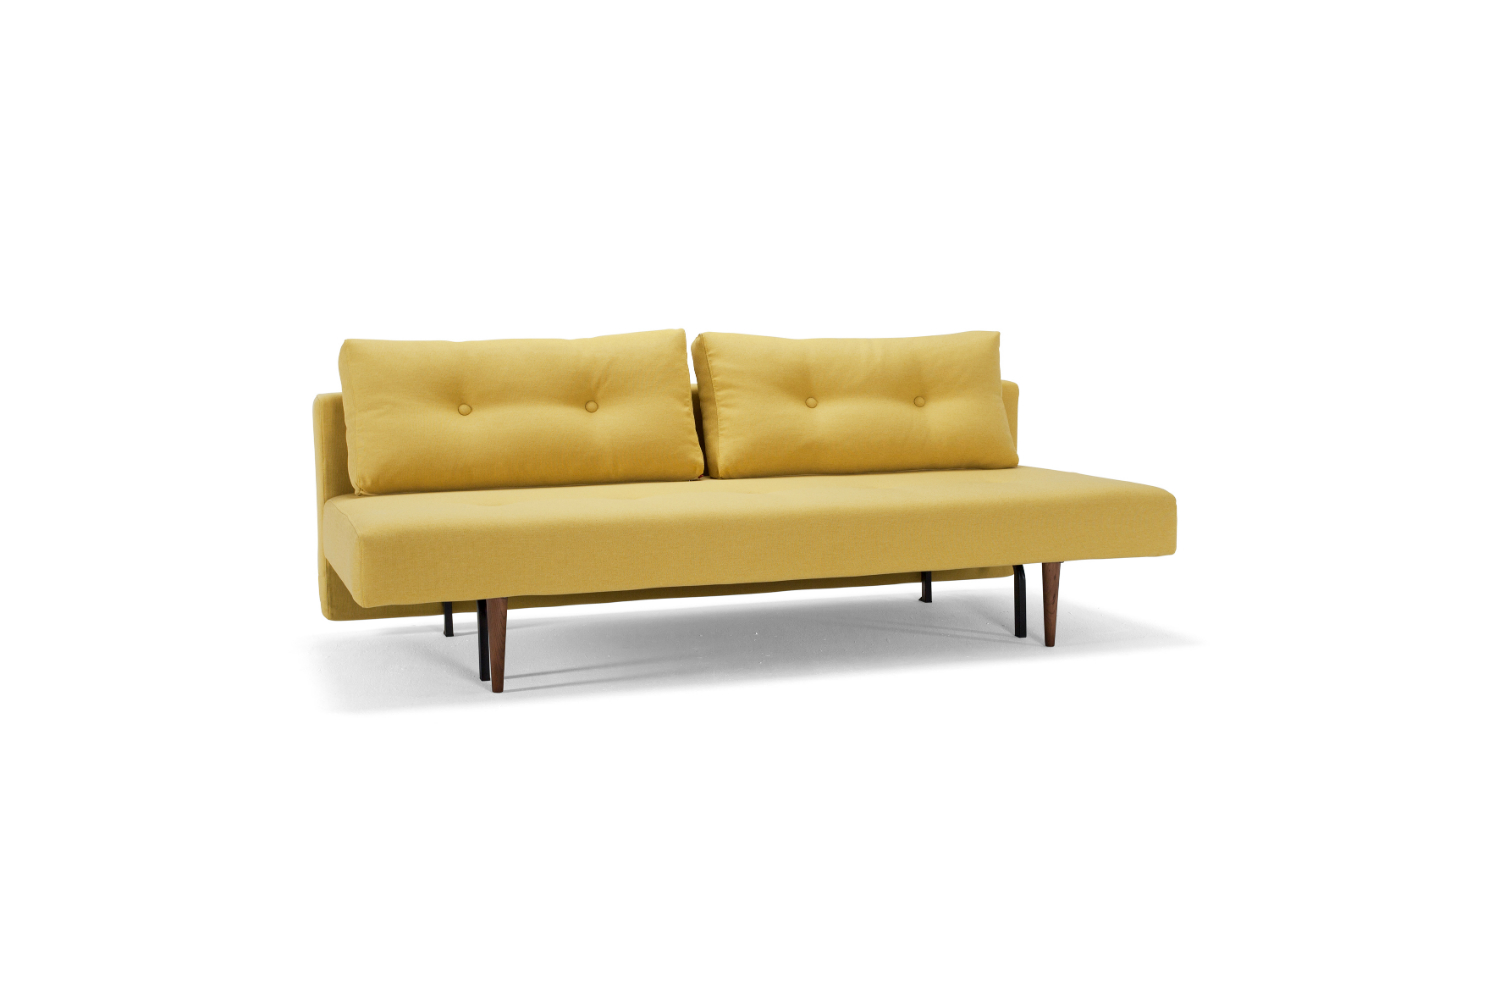 Istyle 2015 recast 554 softmustard flower sofa bed sofa for Edit 03 sofa